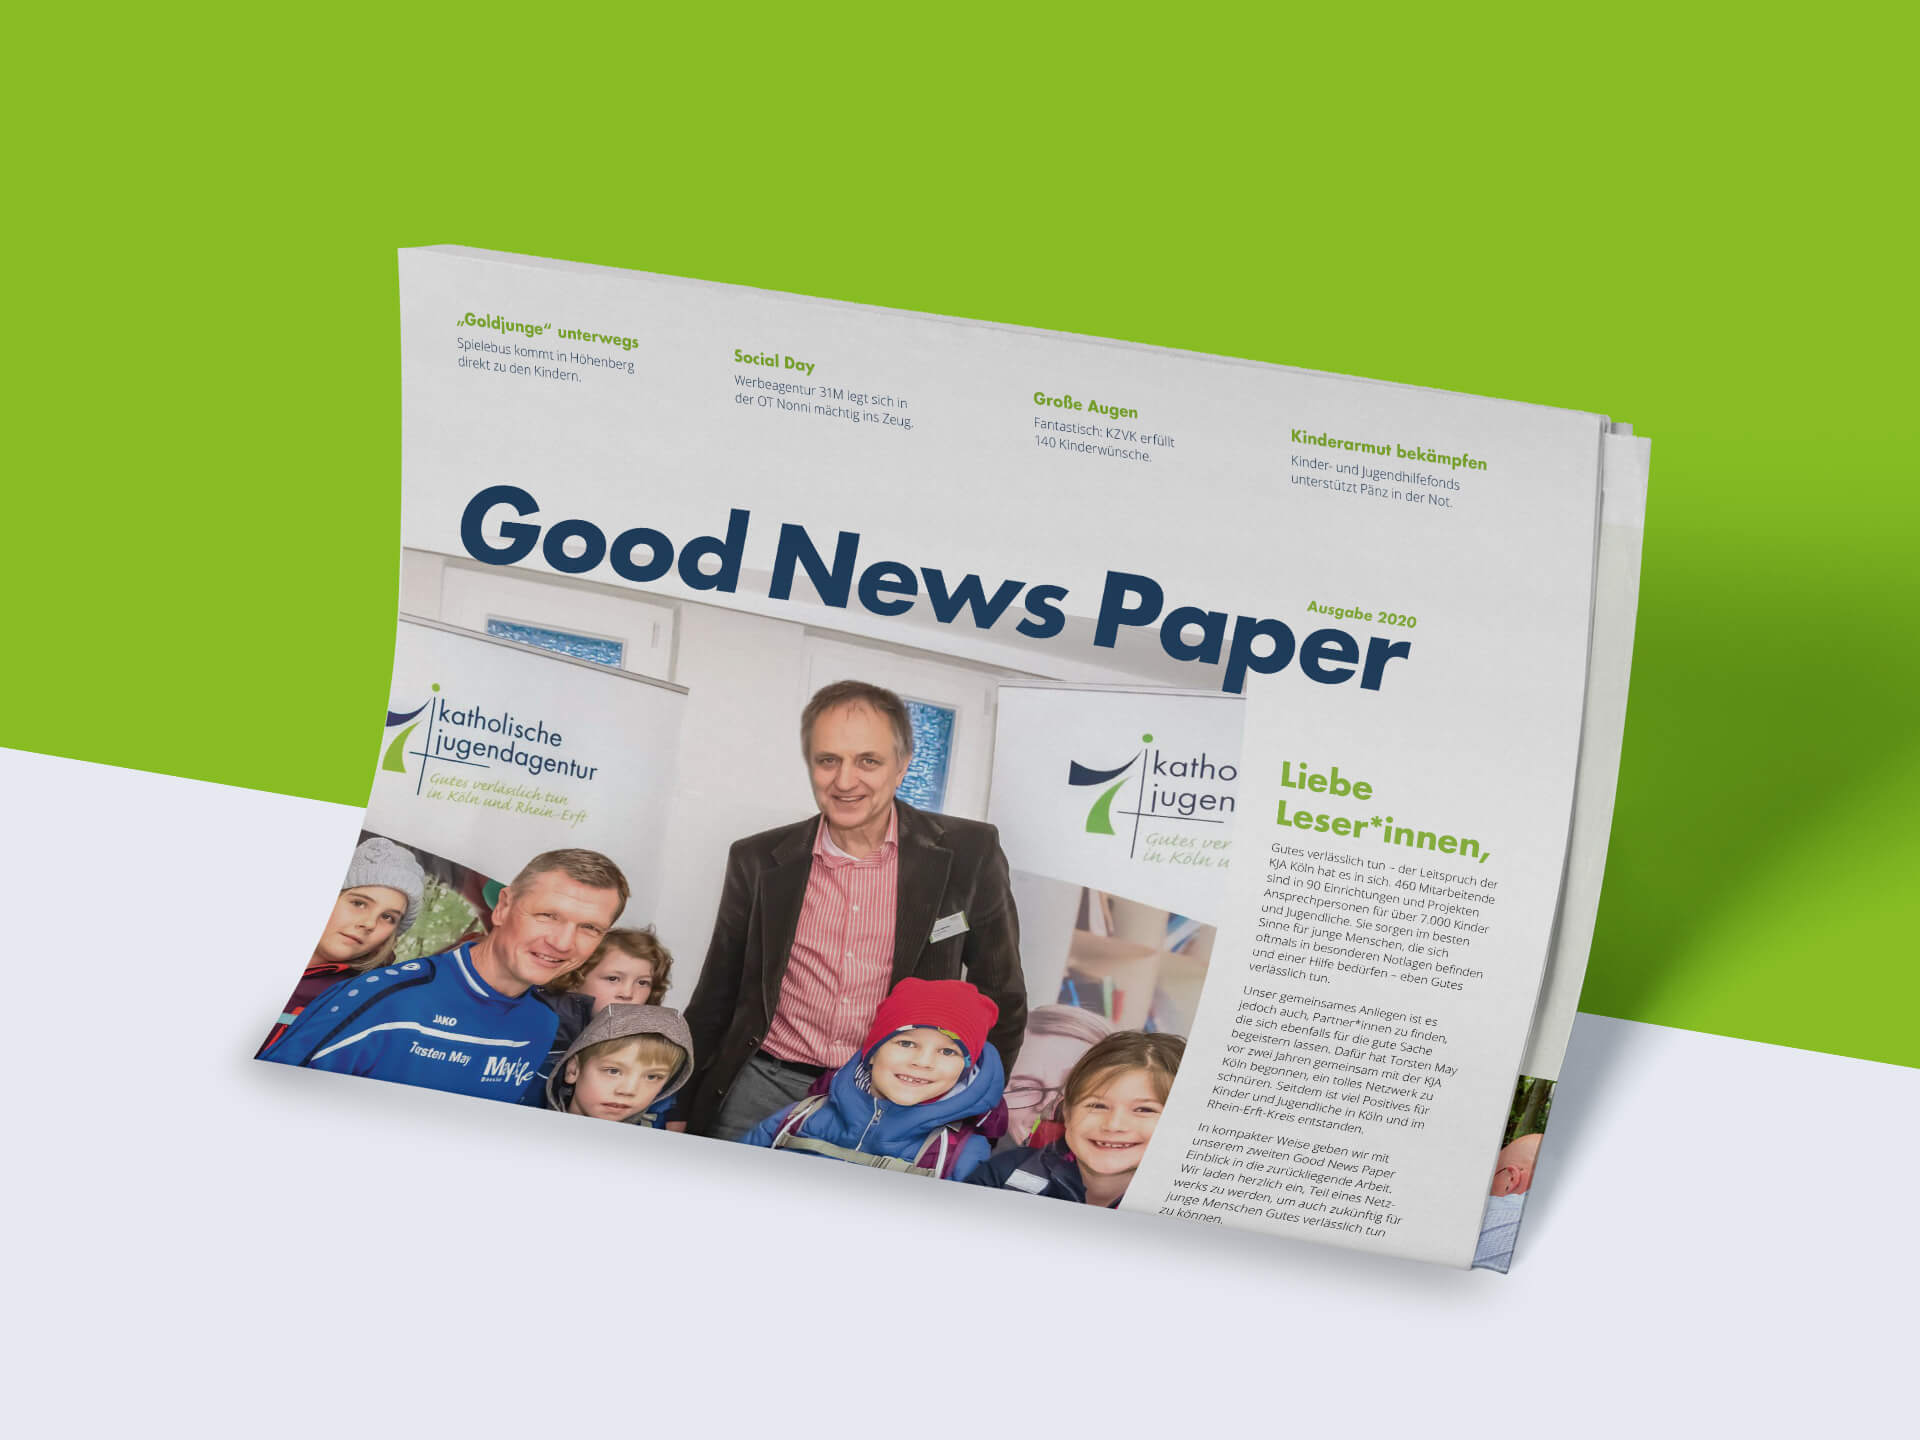 Titelseite der GOOD NEWS PAPER Zeitung, Corporate Publishing, Non-Profit